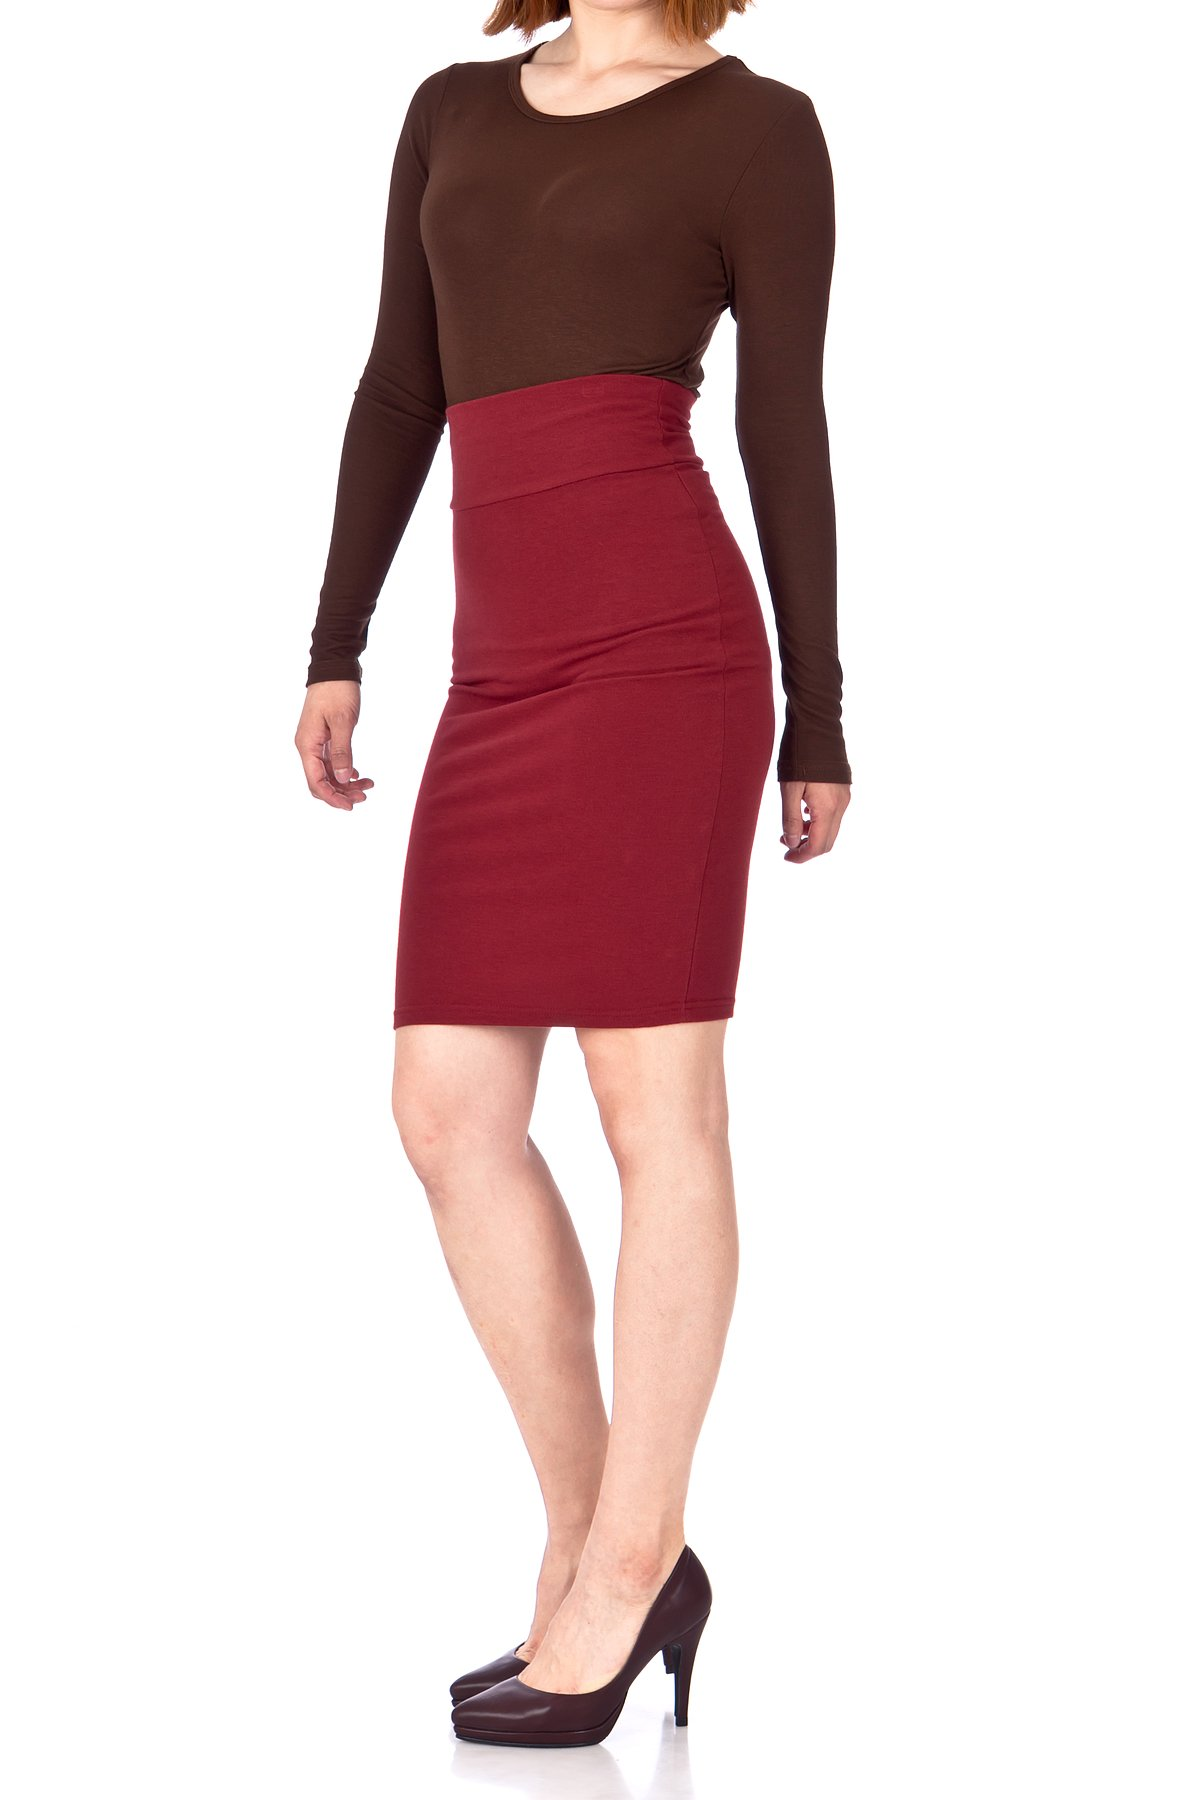 Every Occasion Stretch Pull on Wide High Waist Bodycon Pencil Knee Length Midi Skirt Burgundy 03